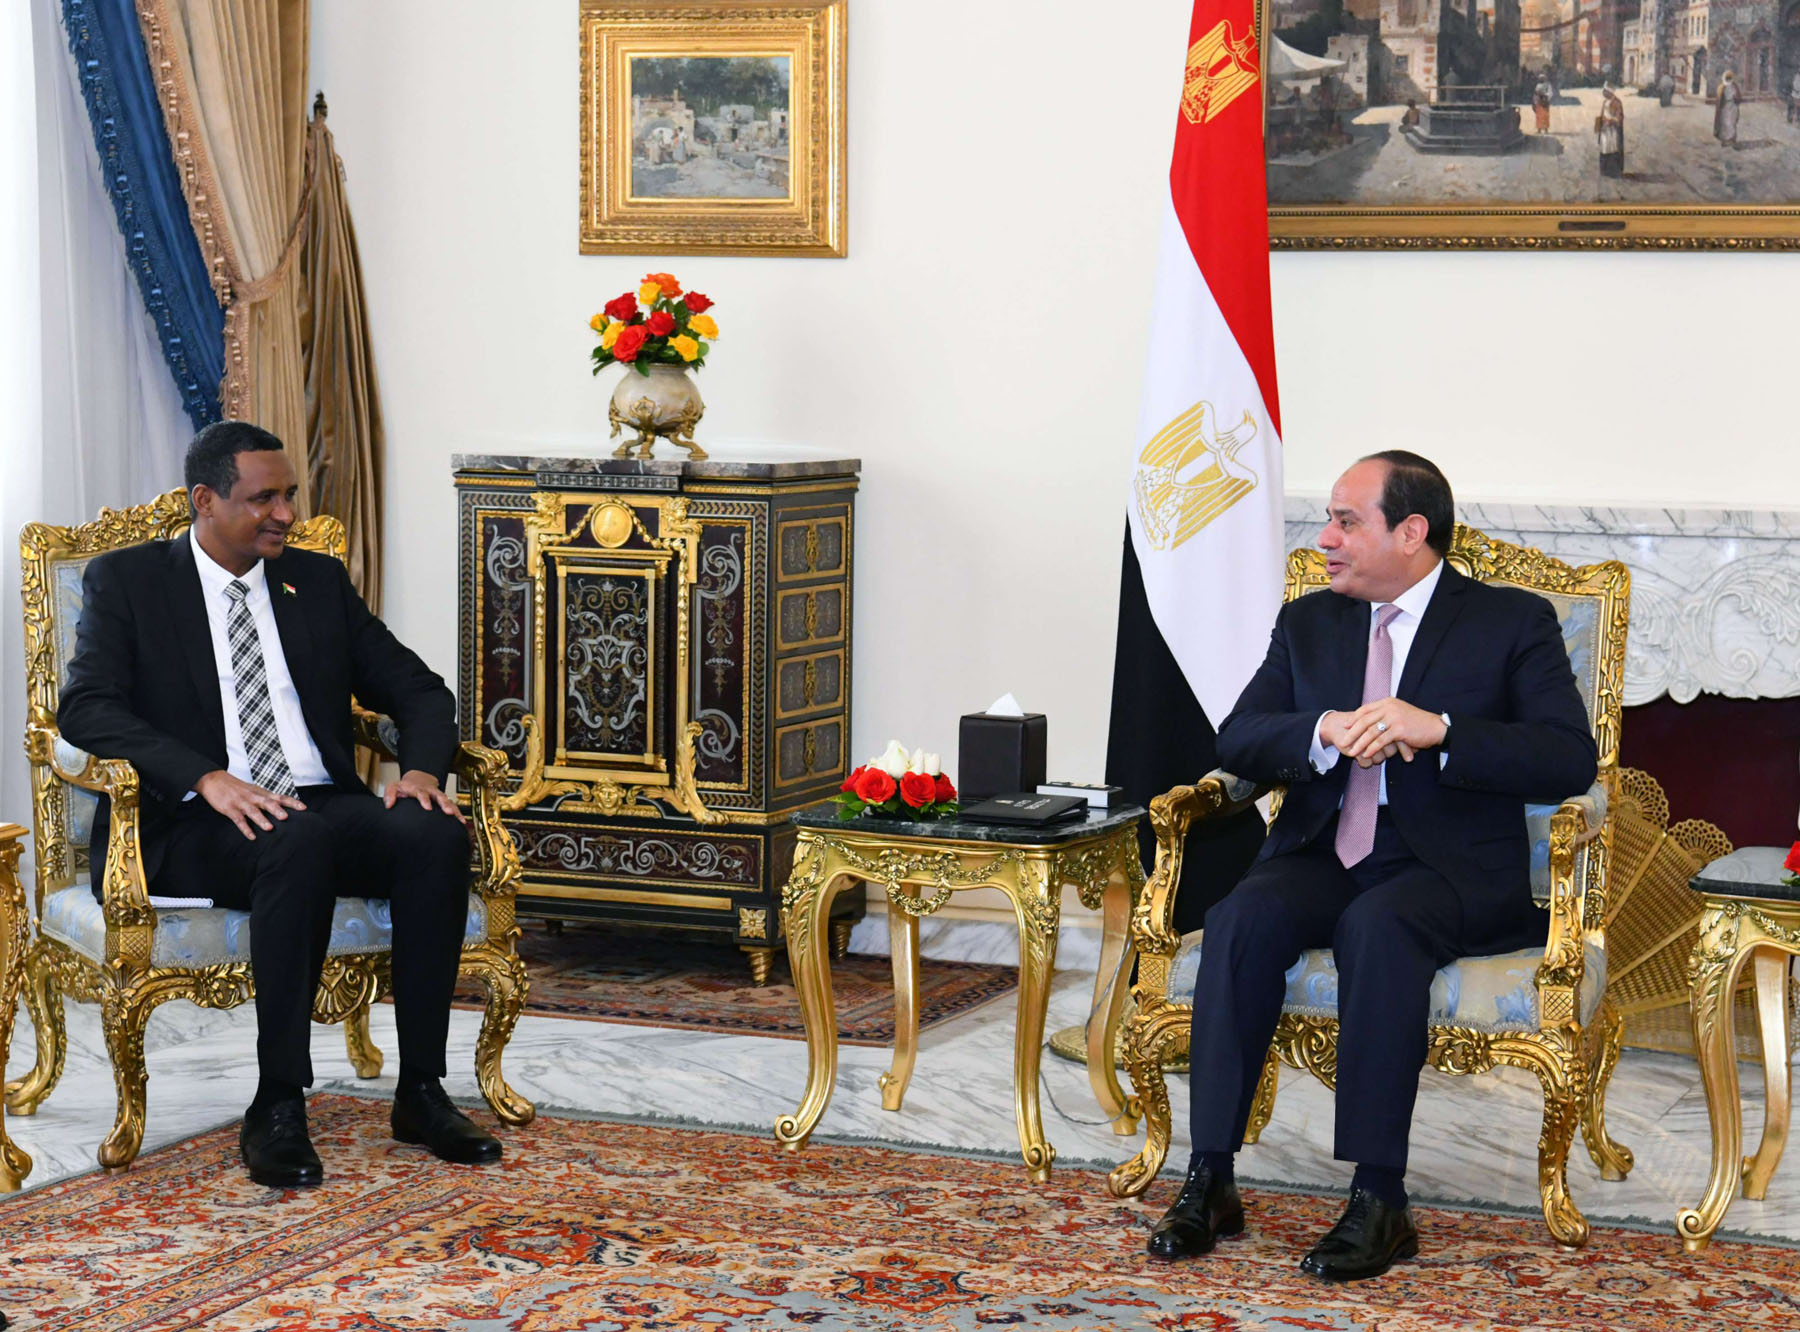 Egyptian President Abdel Fattah el-Sisi (R) meets with General Mohamed Hamdan Dagalo, Deputy Head of Sudan's Transitional Military Council (TMC), last March. (DPA)